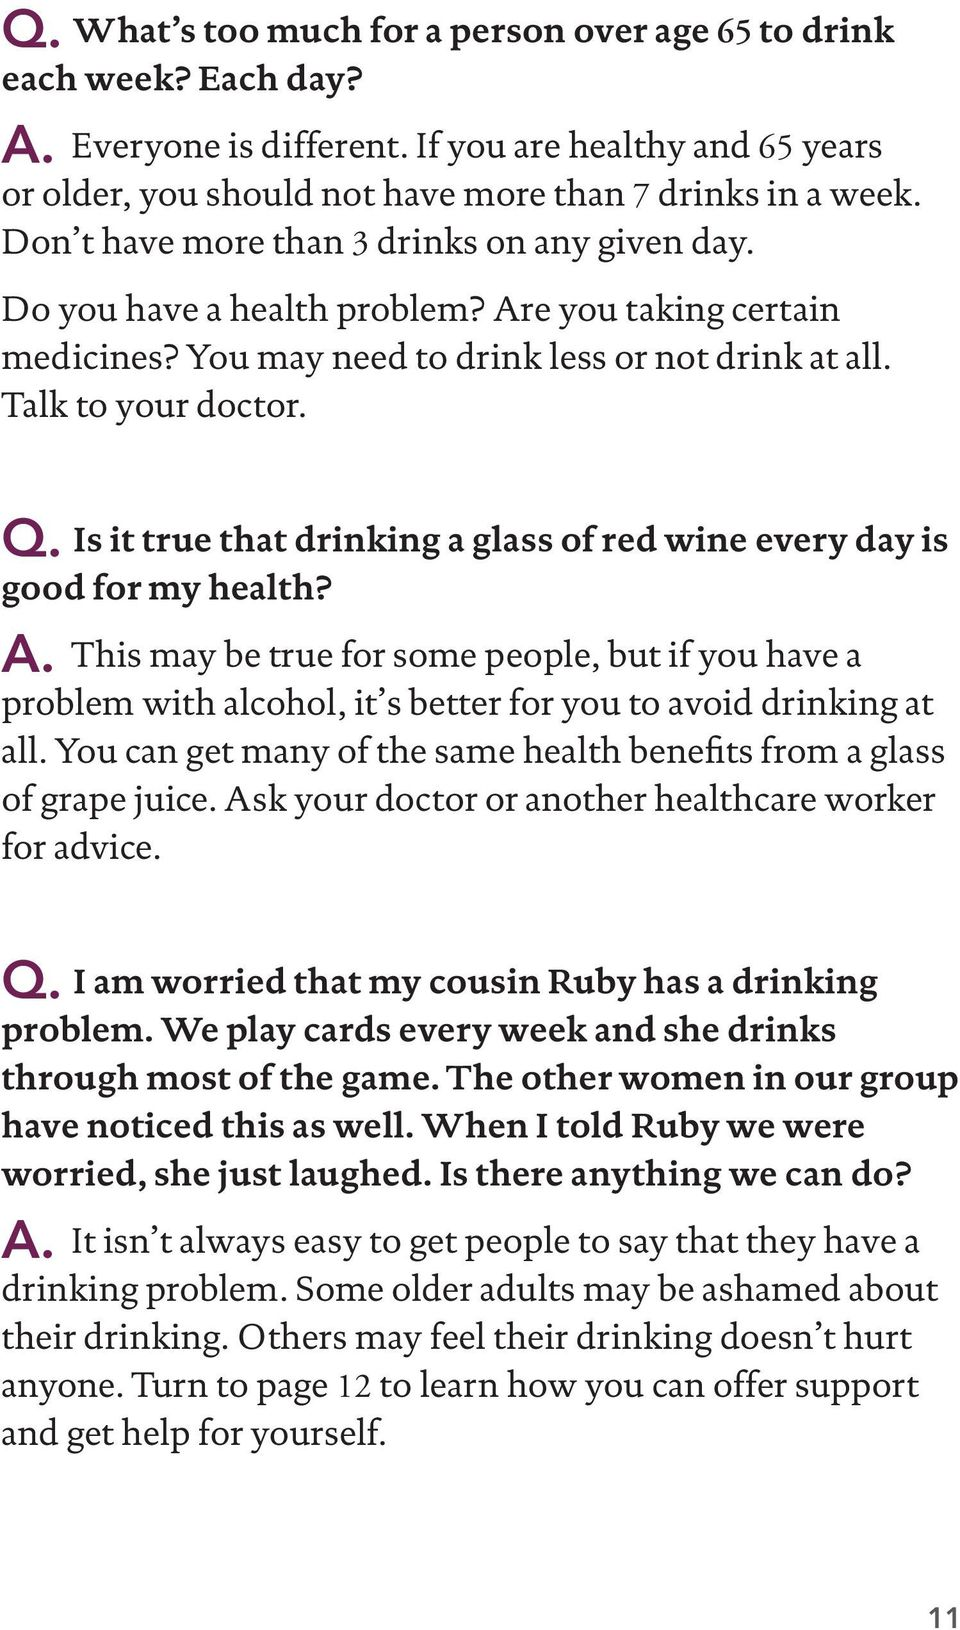 Is it true that drinking a glass of red wine every day is good for my health? A. This may be true for some people, but if you have a problem with alcohol, it s better for you to avoid drinking at all.